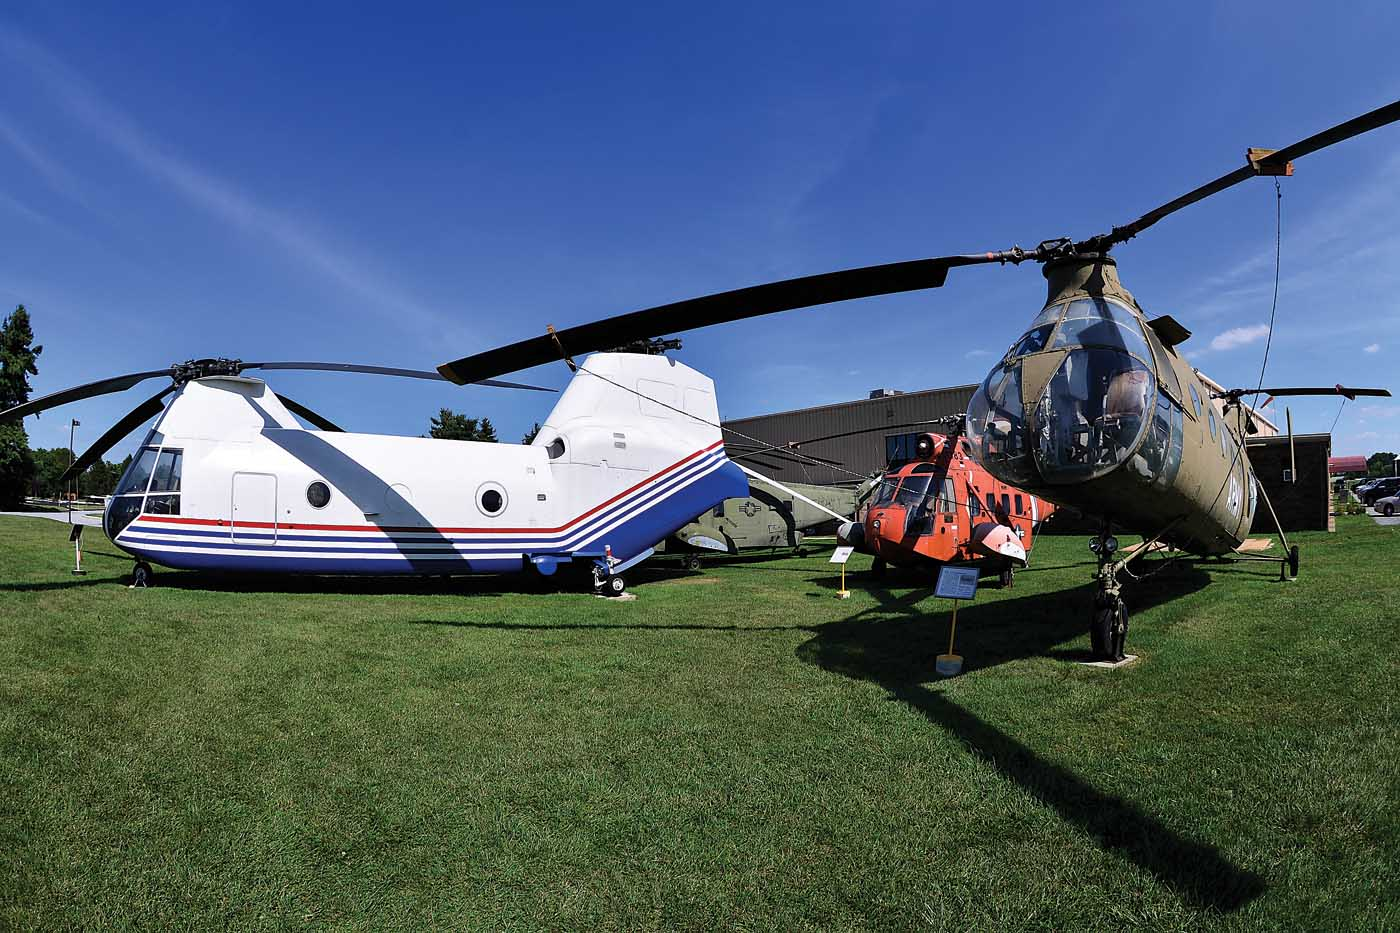 The American Helicopter Museum and Education Center has quite a collection of historic rotary-wing aircraft, including the Boeing Model 360, and its predecessor, the Vertol CH-21 Shawnee. Skip Robinson